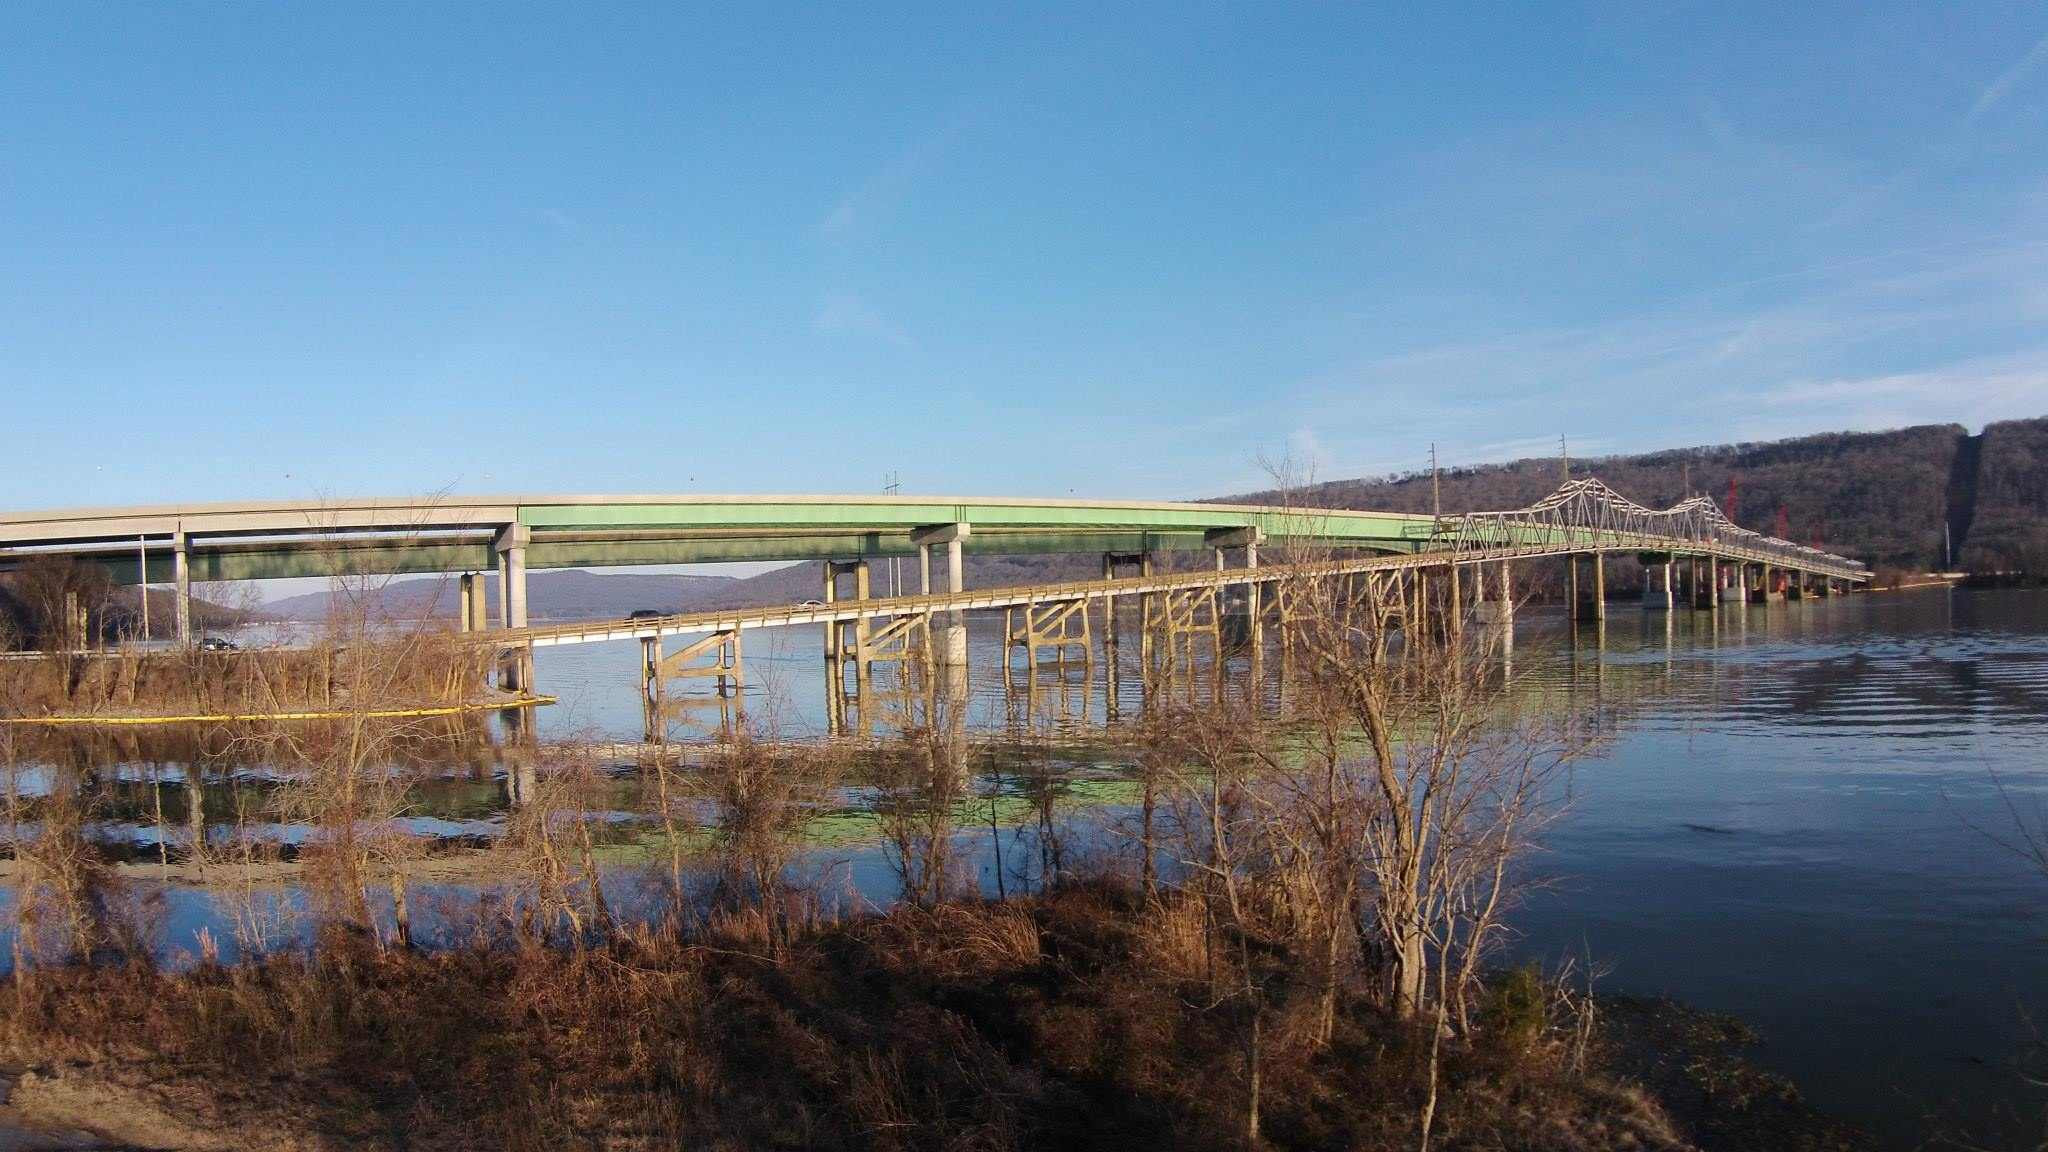 Overview of the slue, approach and main spans of the BB Comer Bridge. Photo taken by David Kennamer